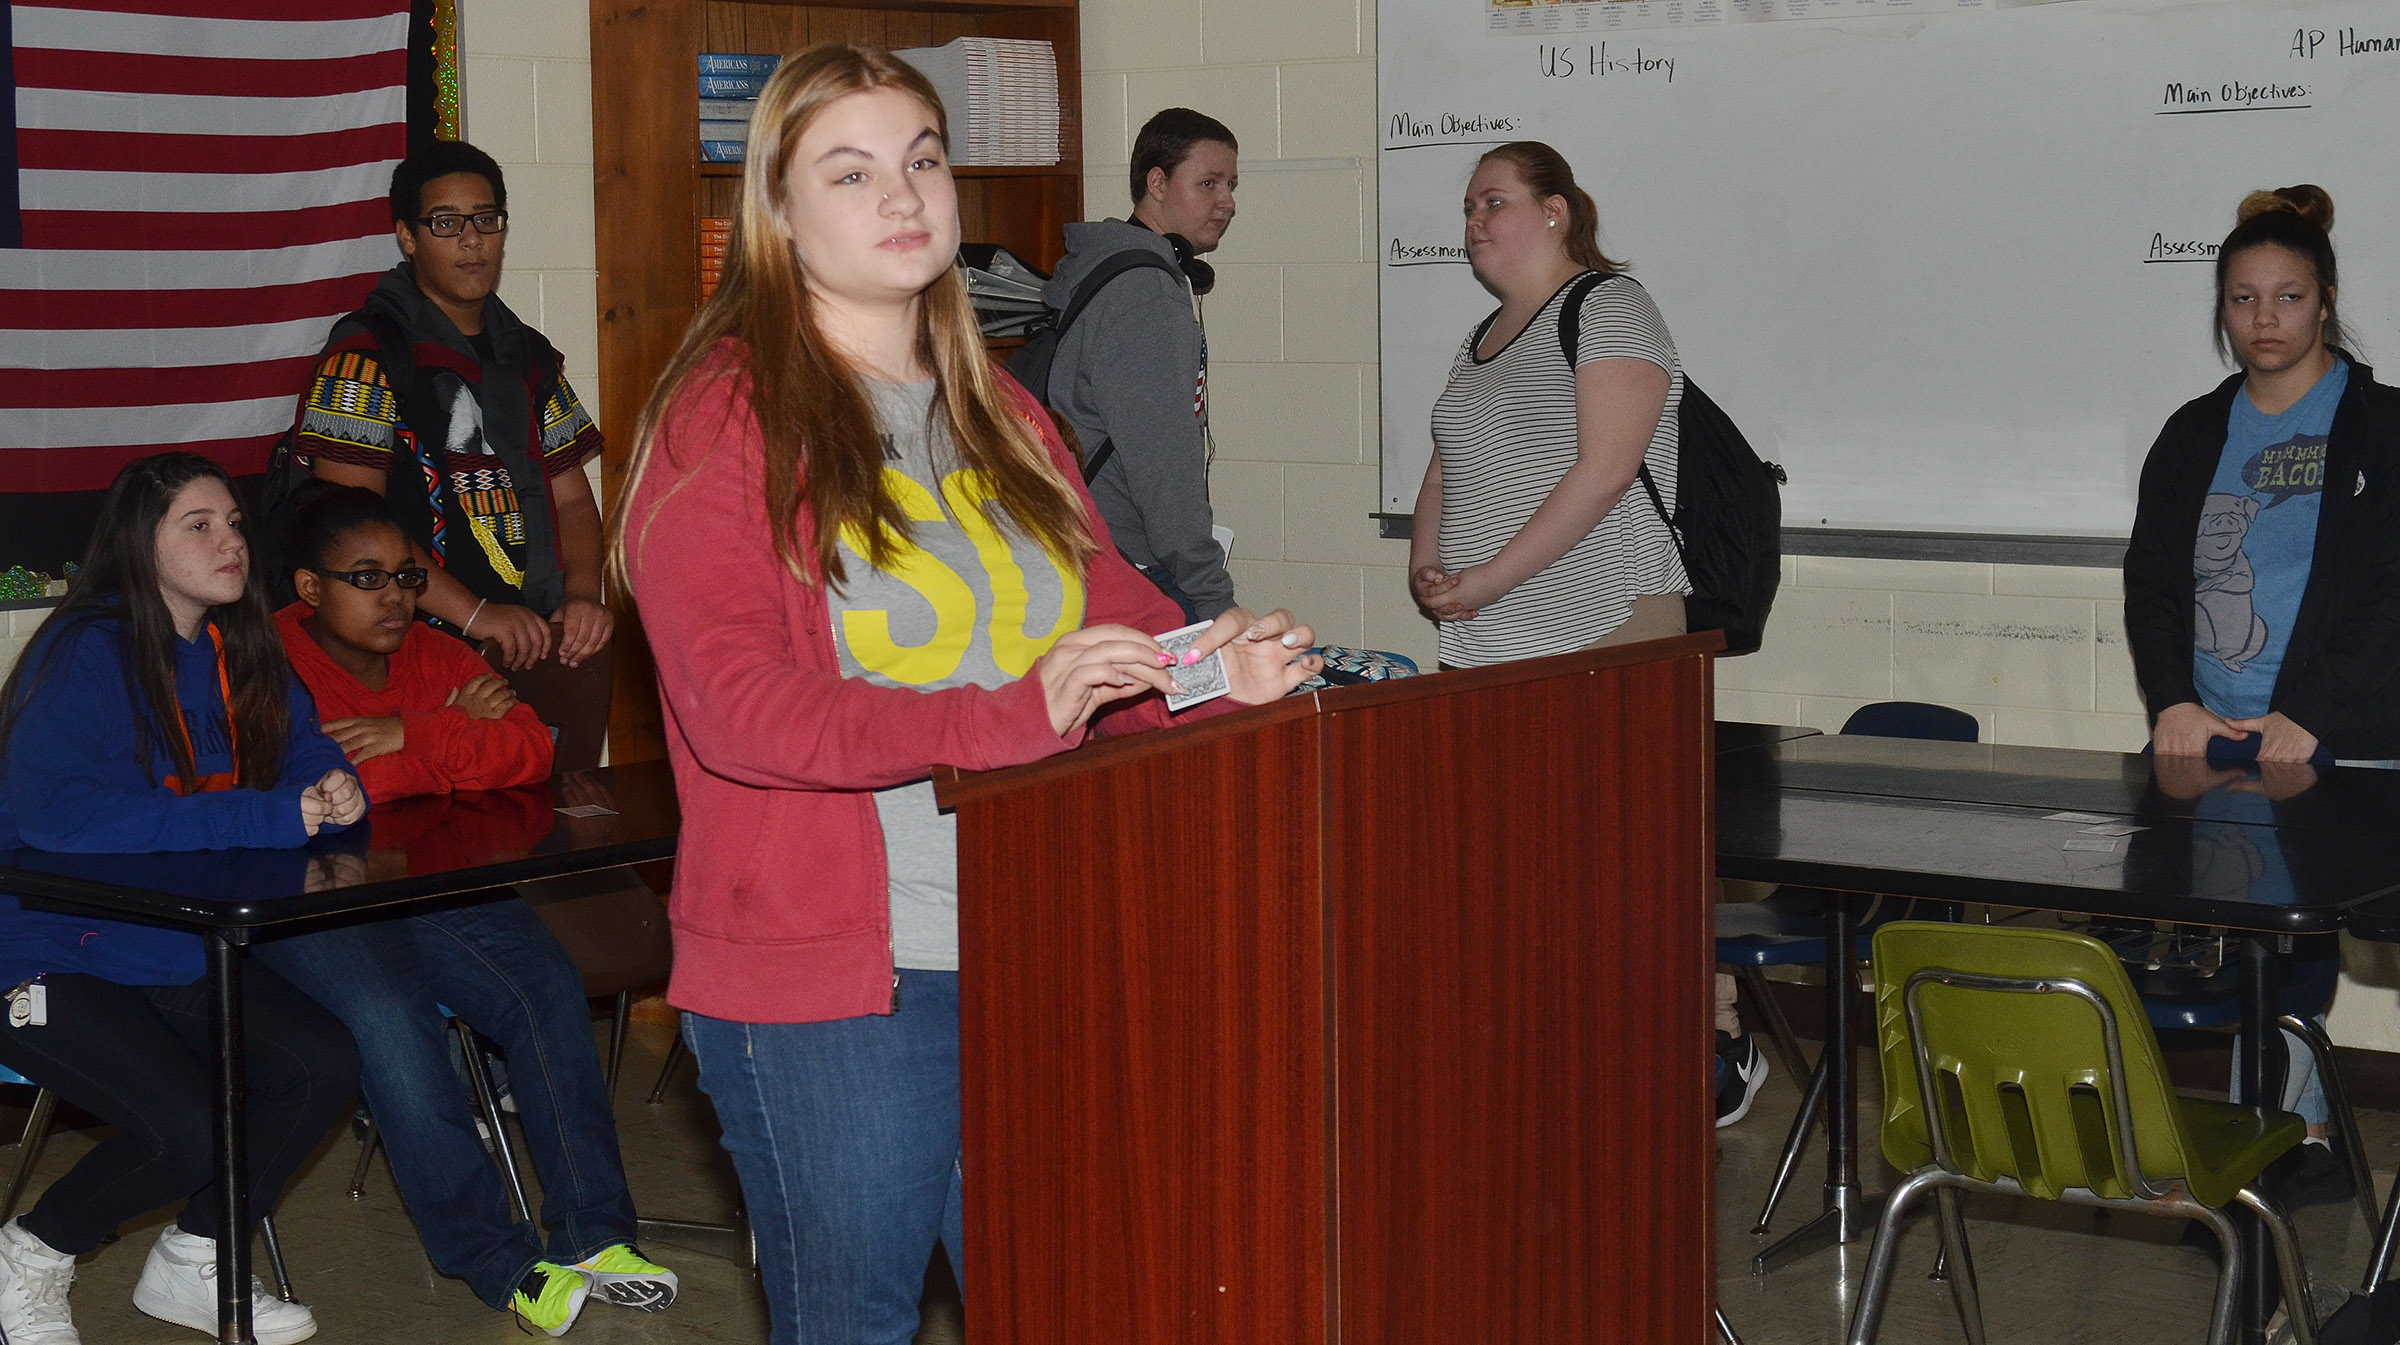 CHS freshman Samantha Underwood reads the possible answers to a question.